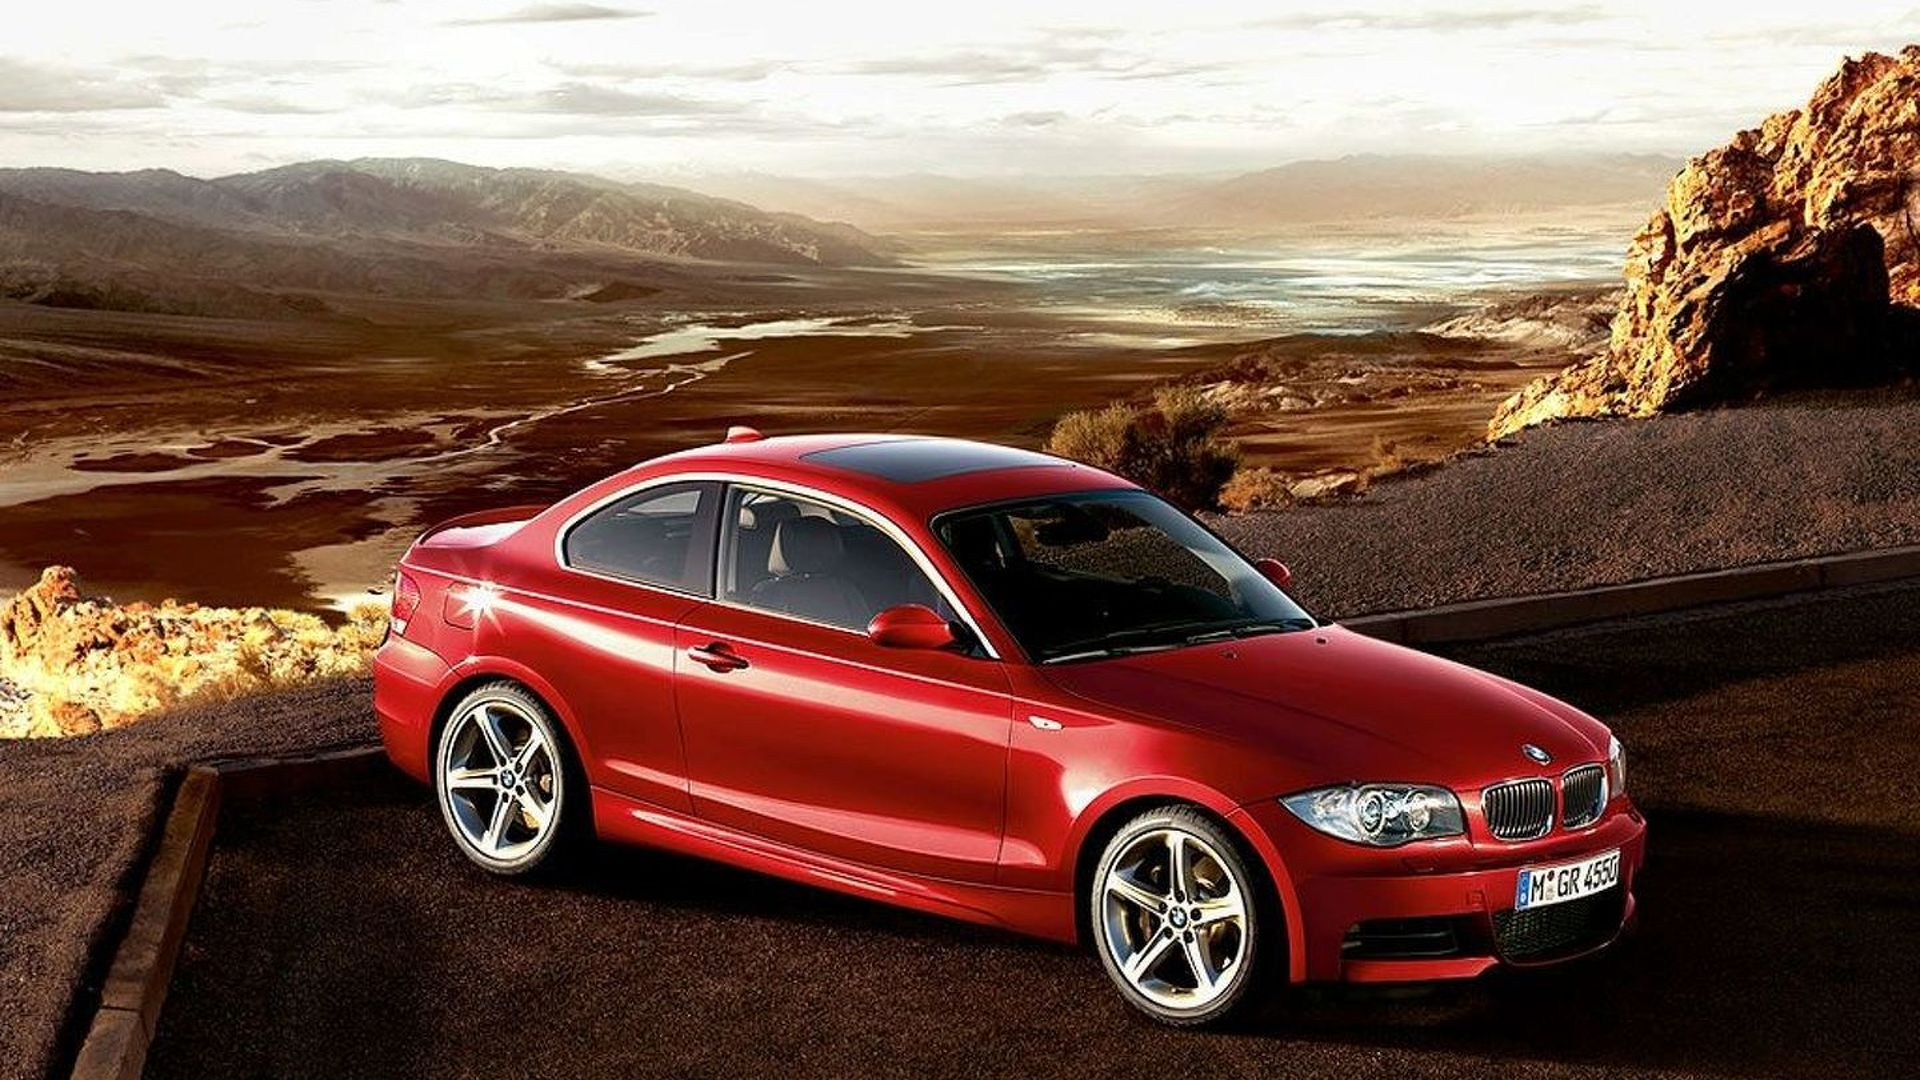 Front Wheel Drive Cars >> 80 Percent Of Bmw 1 Series Drivers Think The Car Is A Front